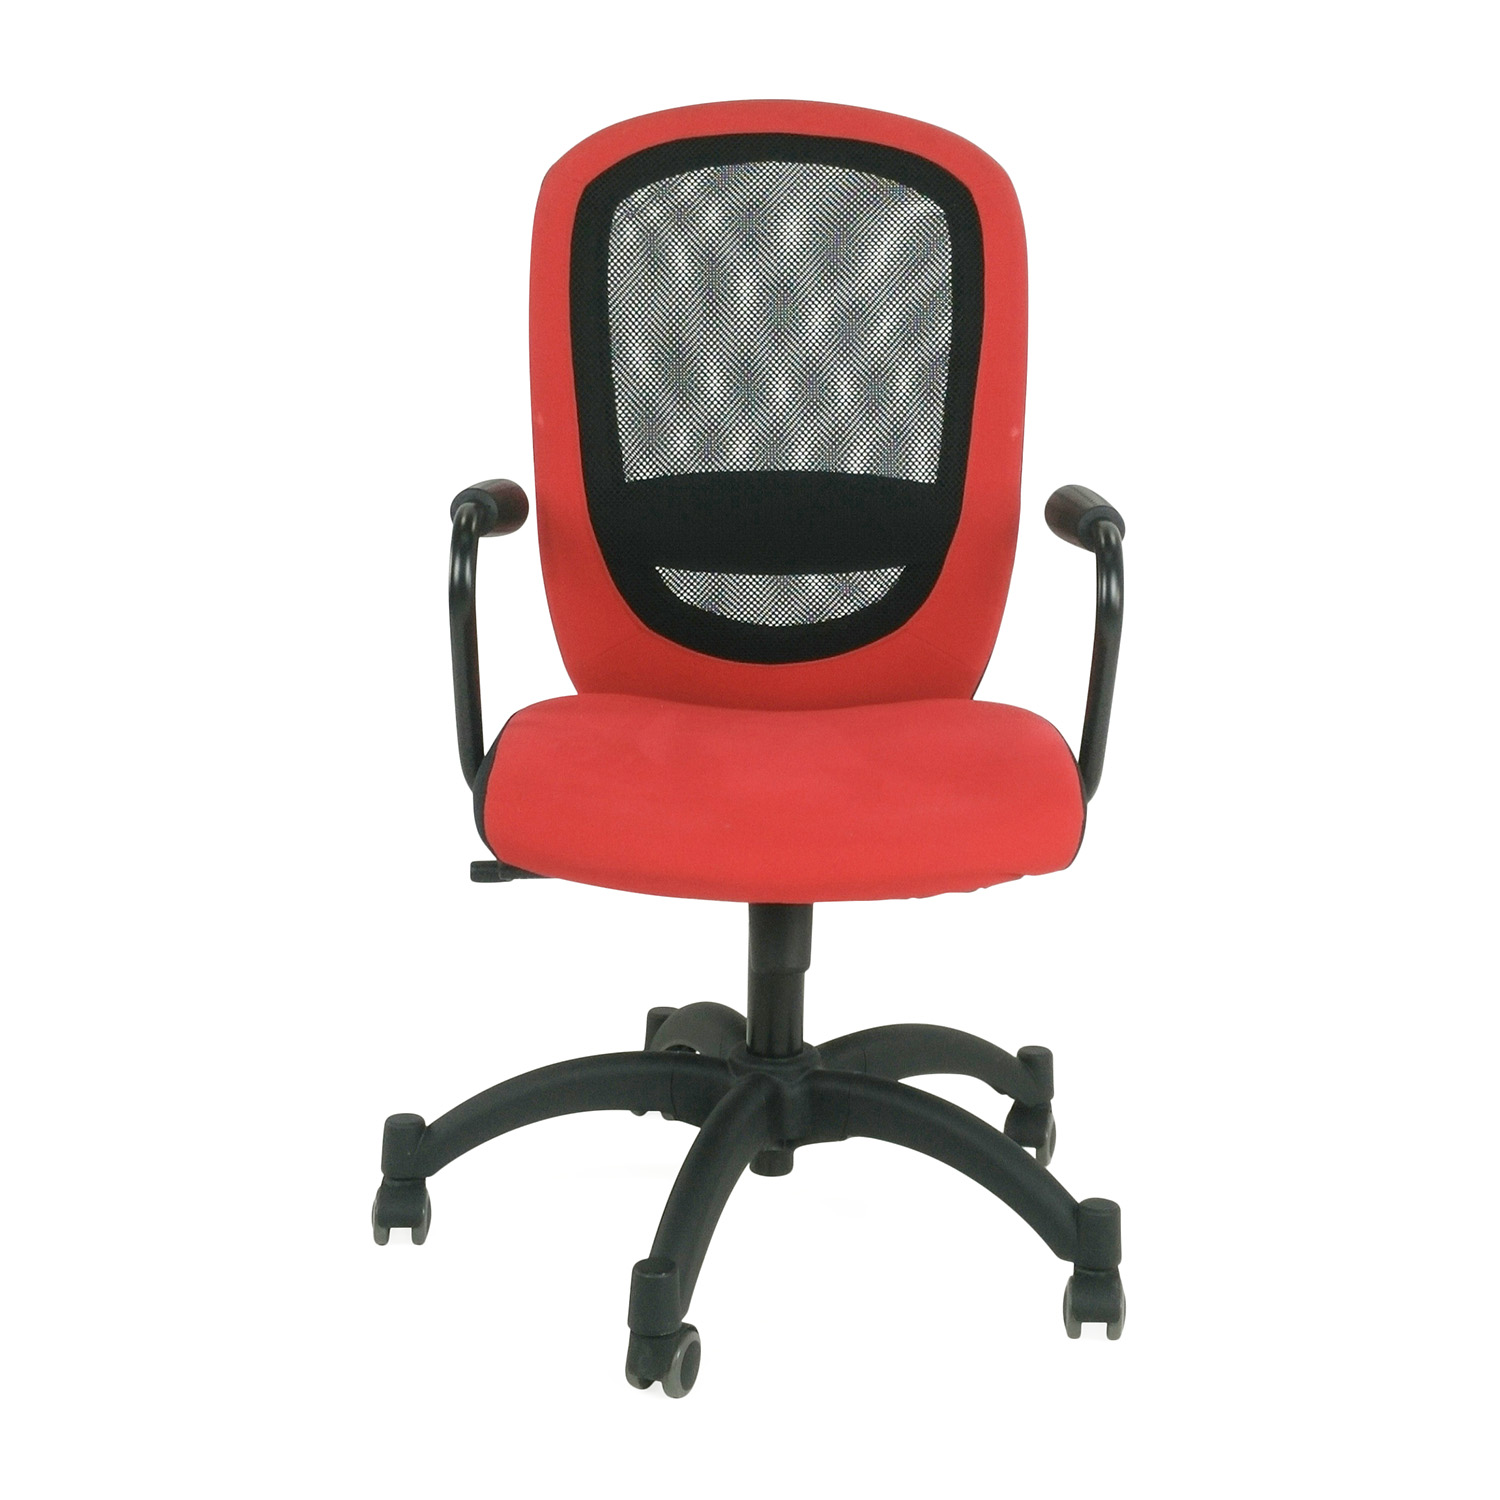 IKEA Red Office Chair Home Office Chairs